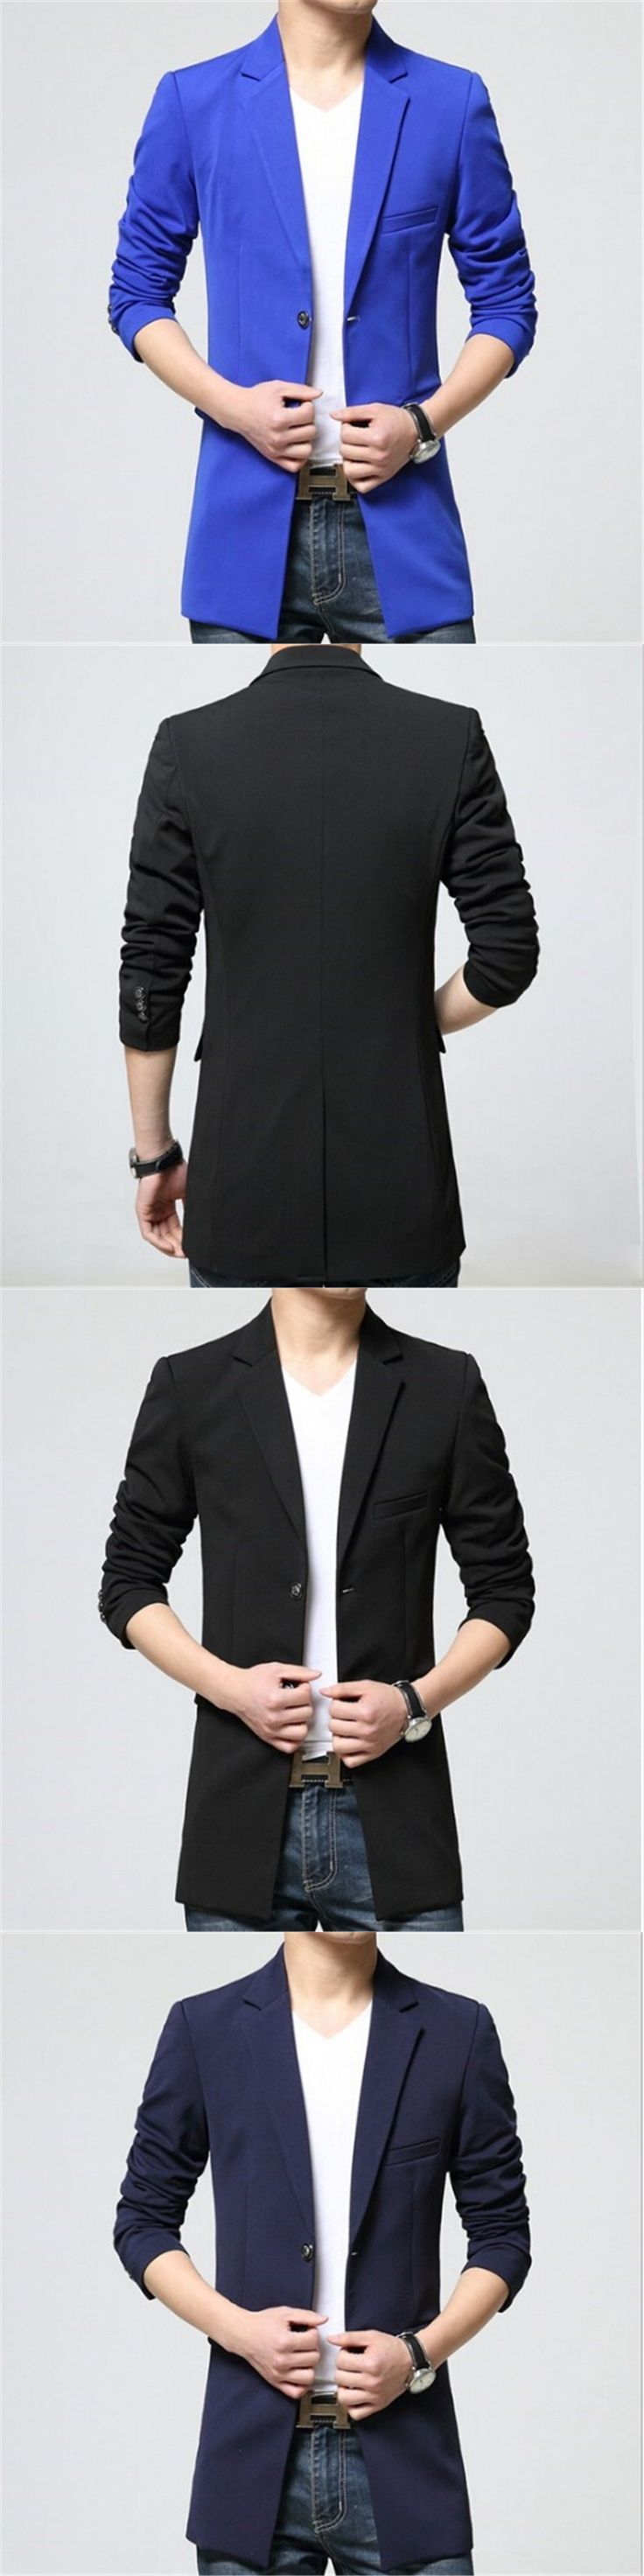 AILOOGE New Arrival 2017 Mens Long Casual Jackets Blazers Men Slim Fit Blazer Fashion Homme Korean Style Clothing